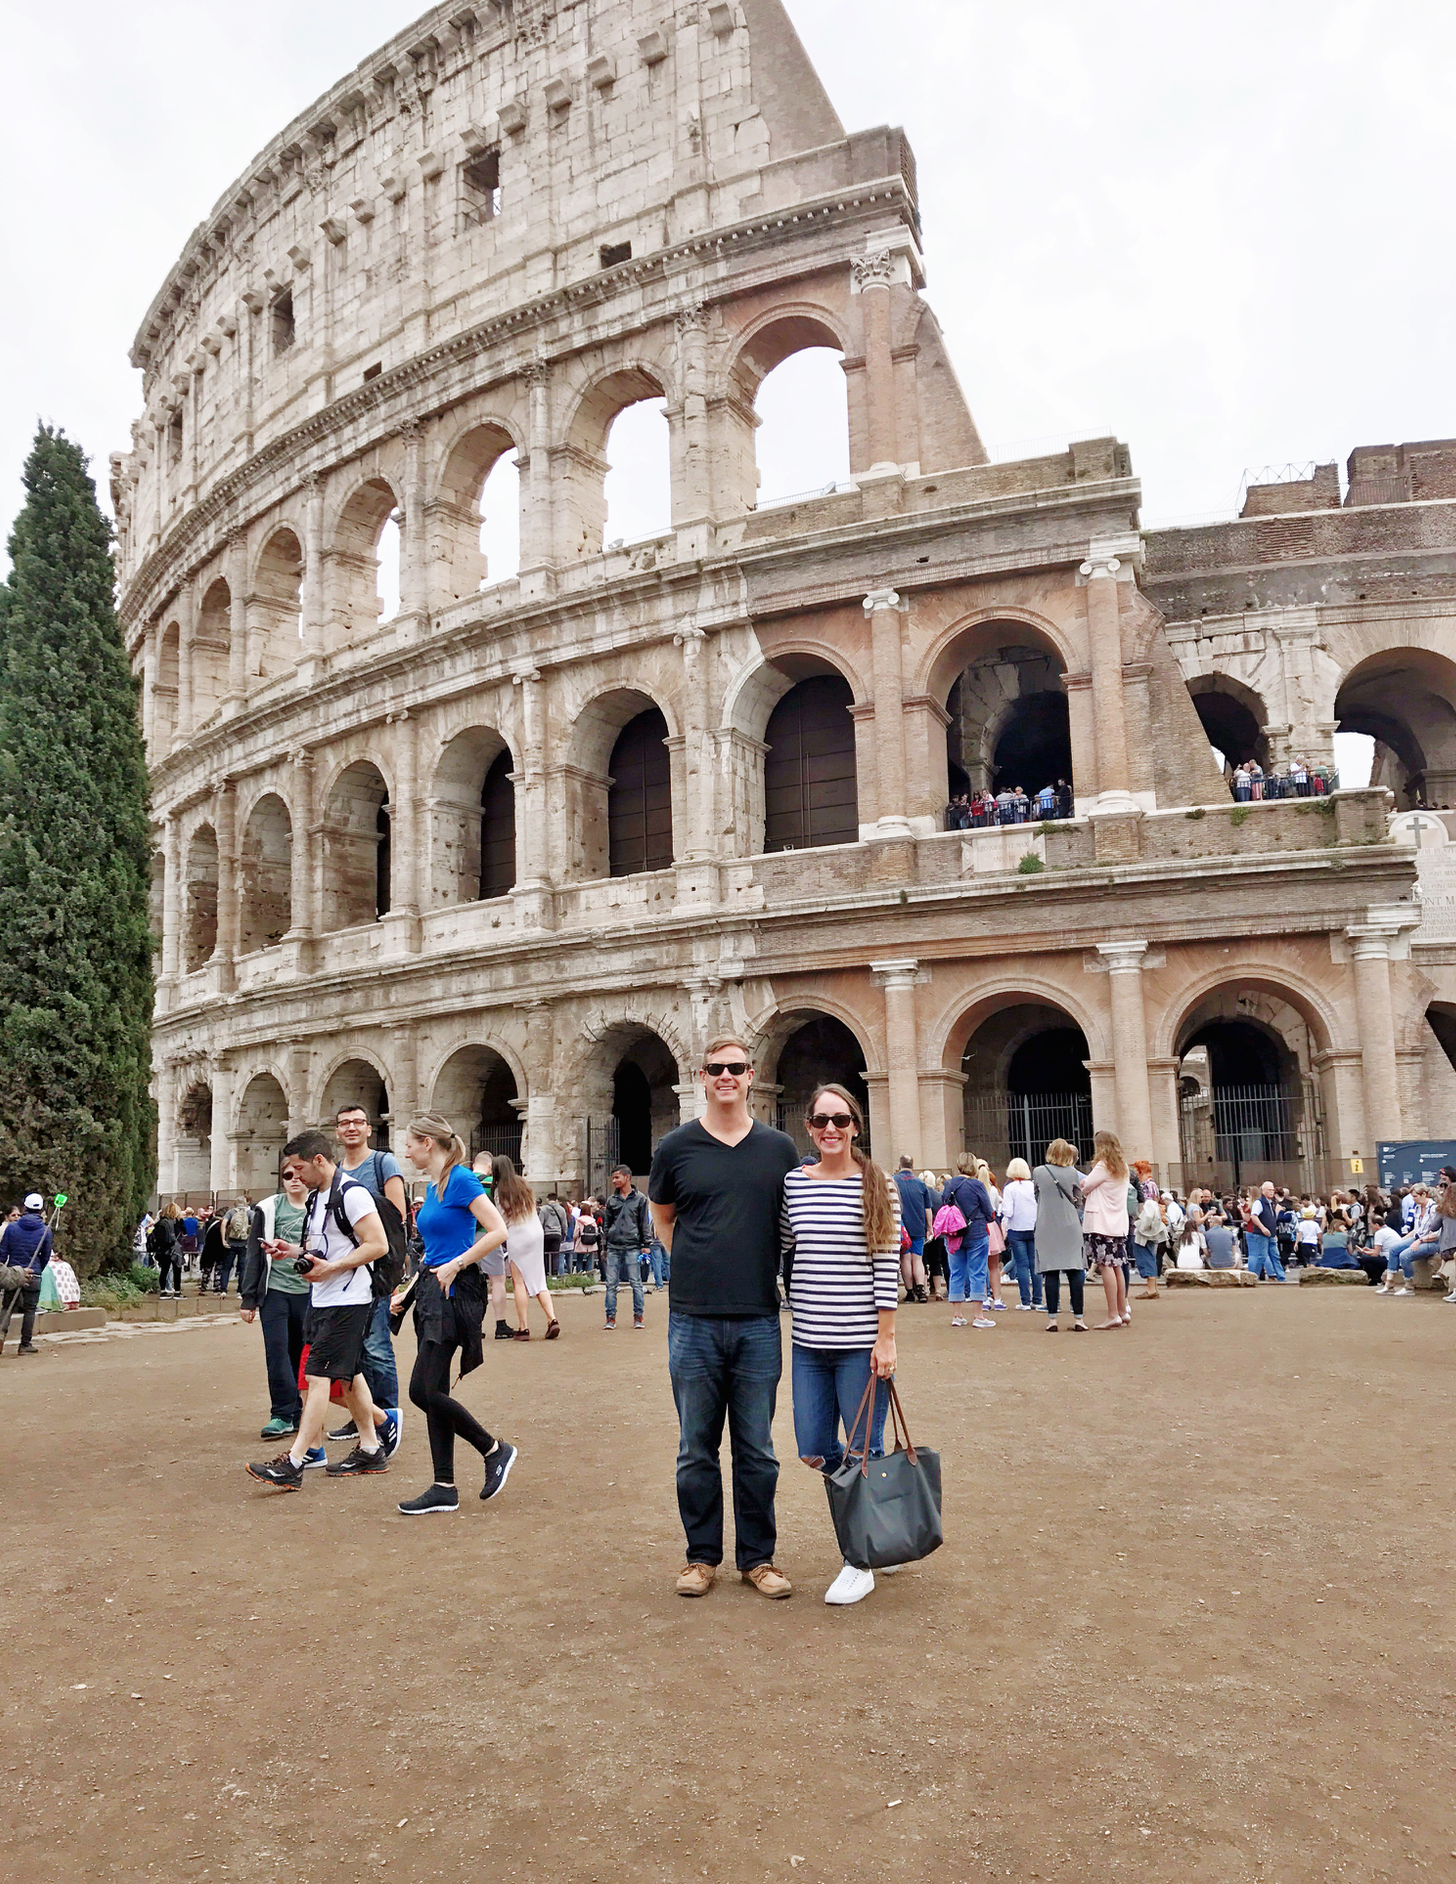 2 Days In Rome - What to do in Rome - Rome Italy - Rome Itinerary - Italy Itinerary - Rome Hotels - Travel to Rome - What to wear in Rome - Rome Hotels - Rome Tips - Visiting the Vatican - Colosseum - Trevi Fountain - Rome Photography - Travel Blog - Communikait by Kait Hanson